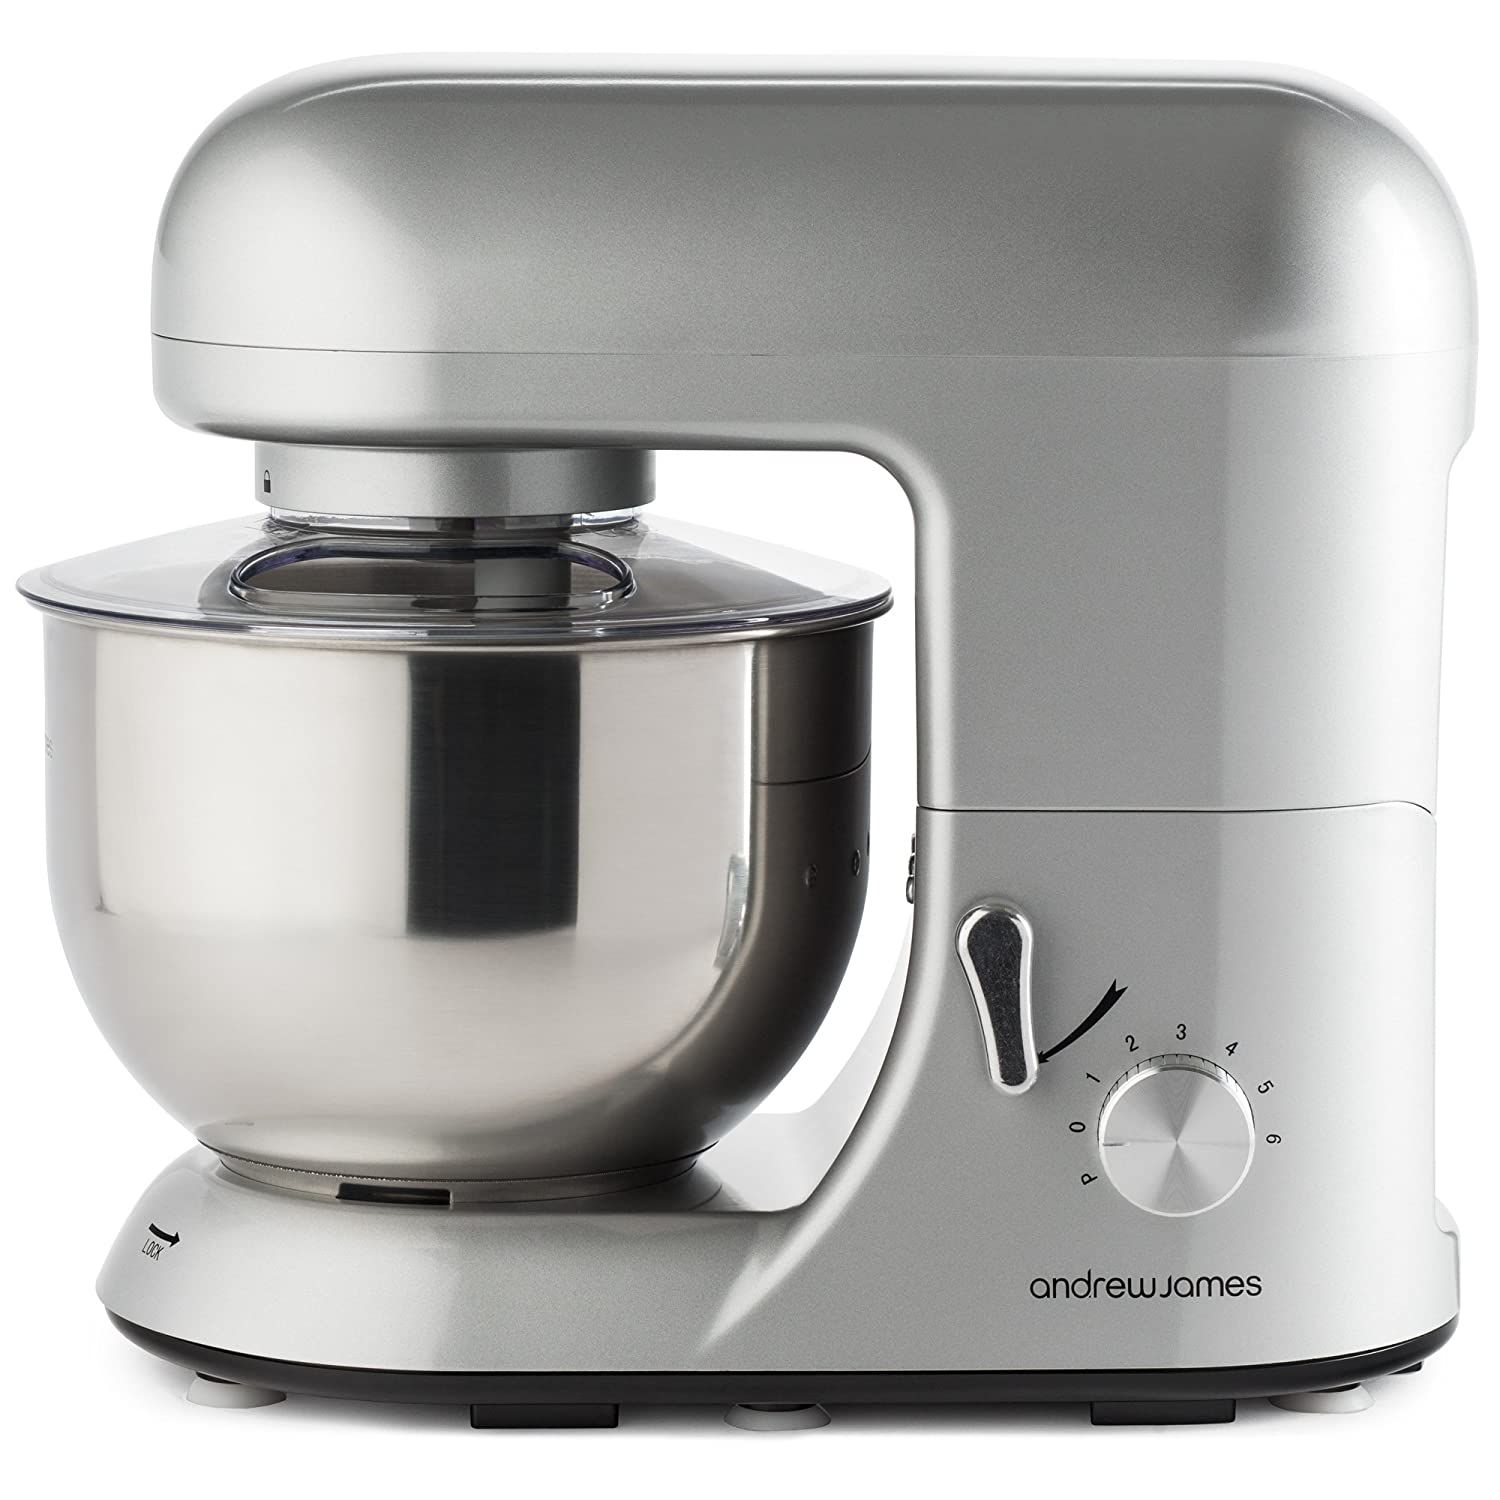 andrew james electric food stand mixer in stunning silver includes